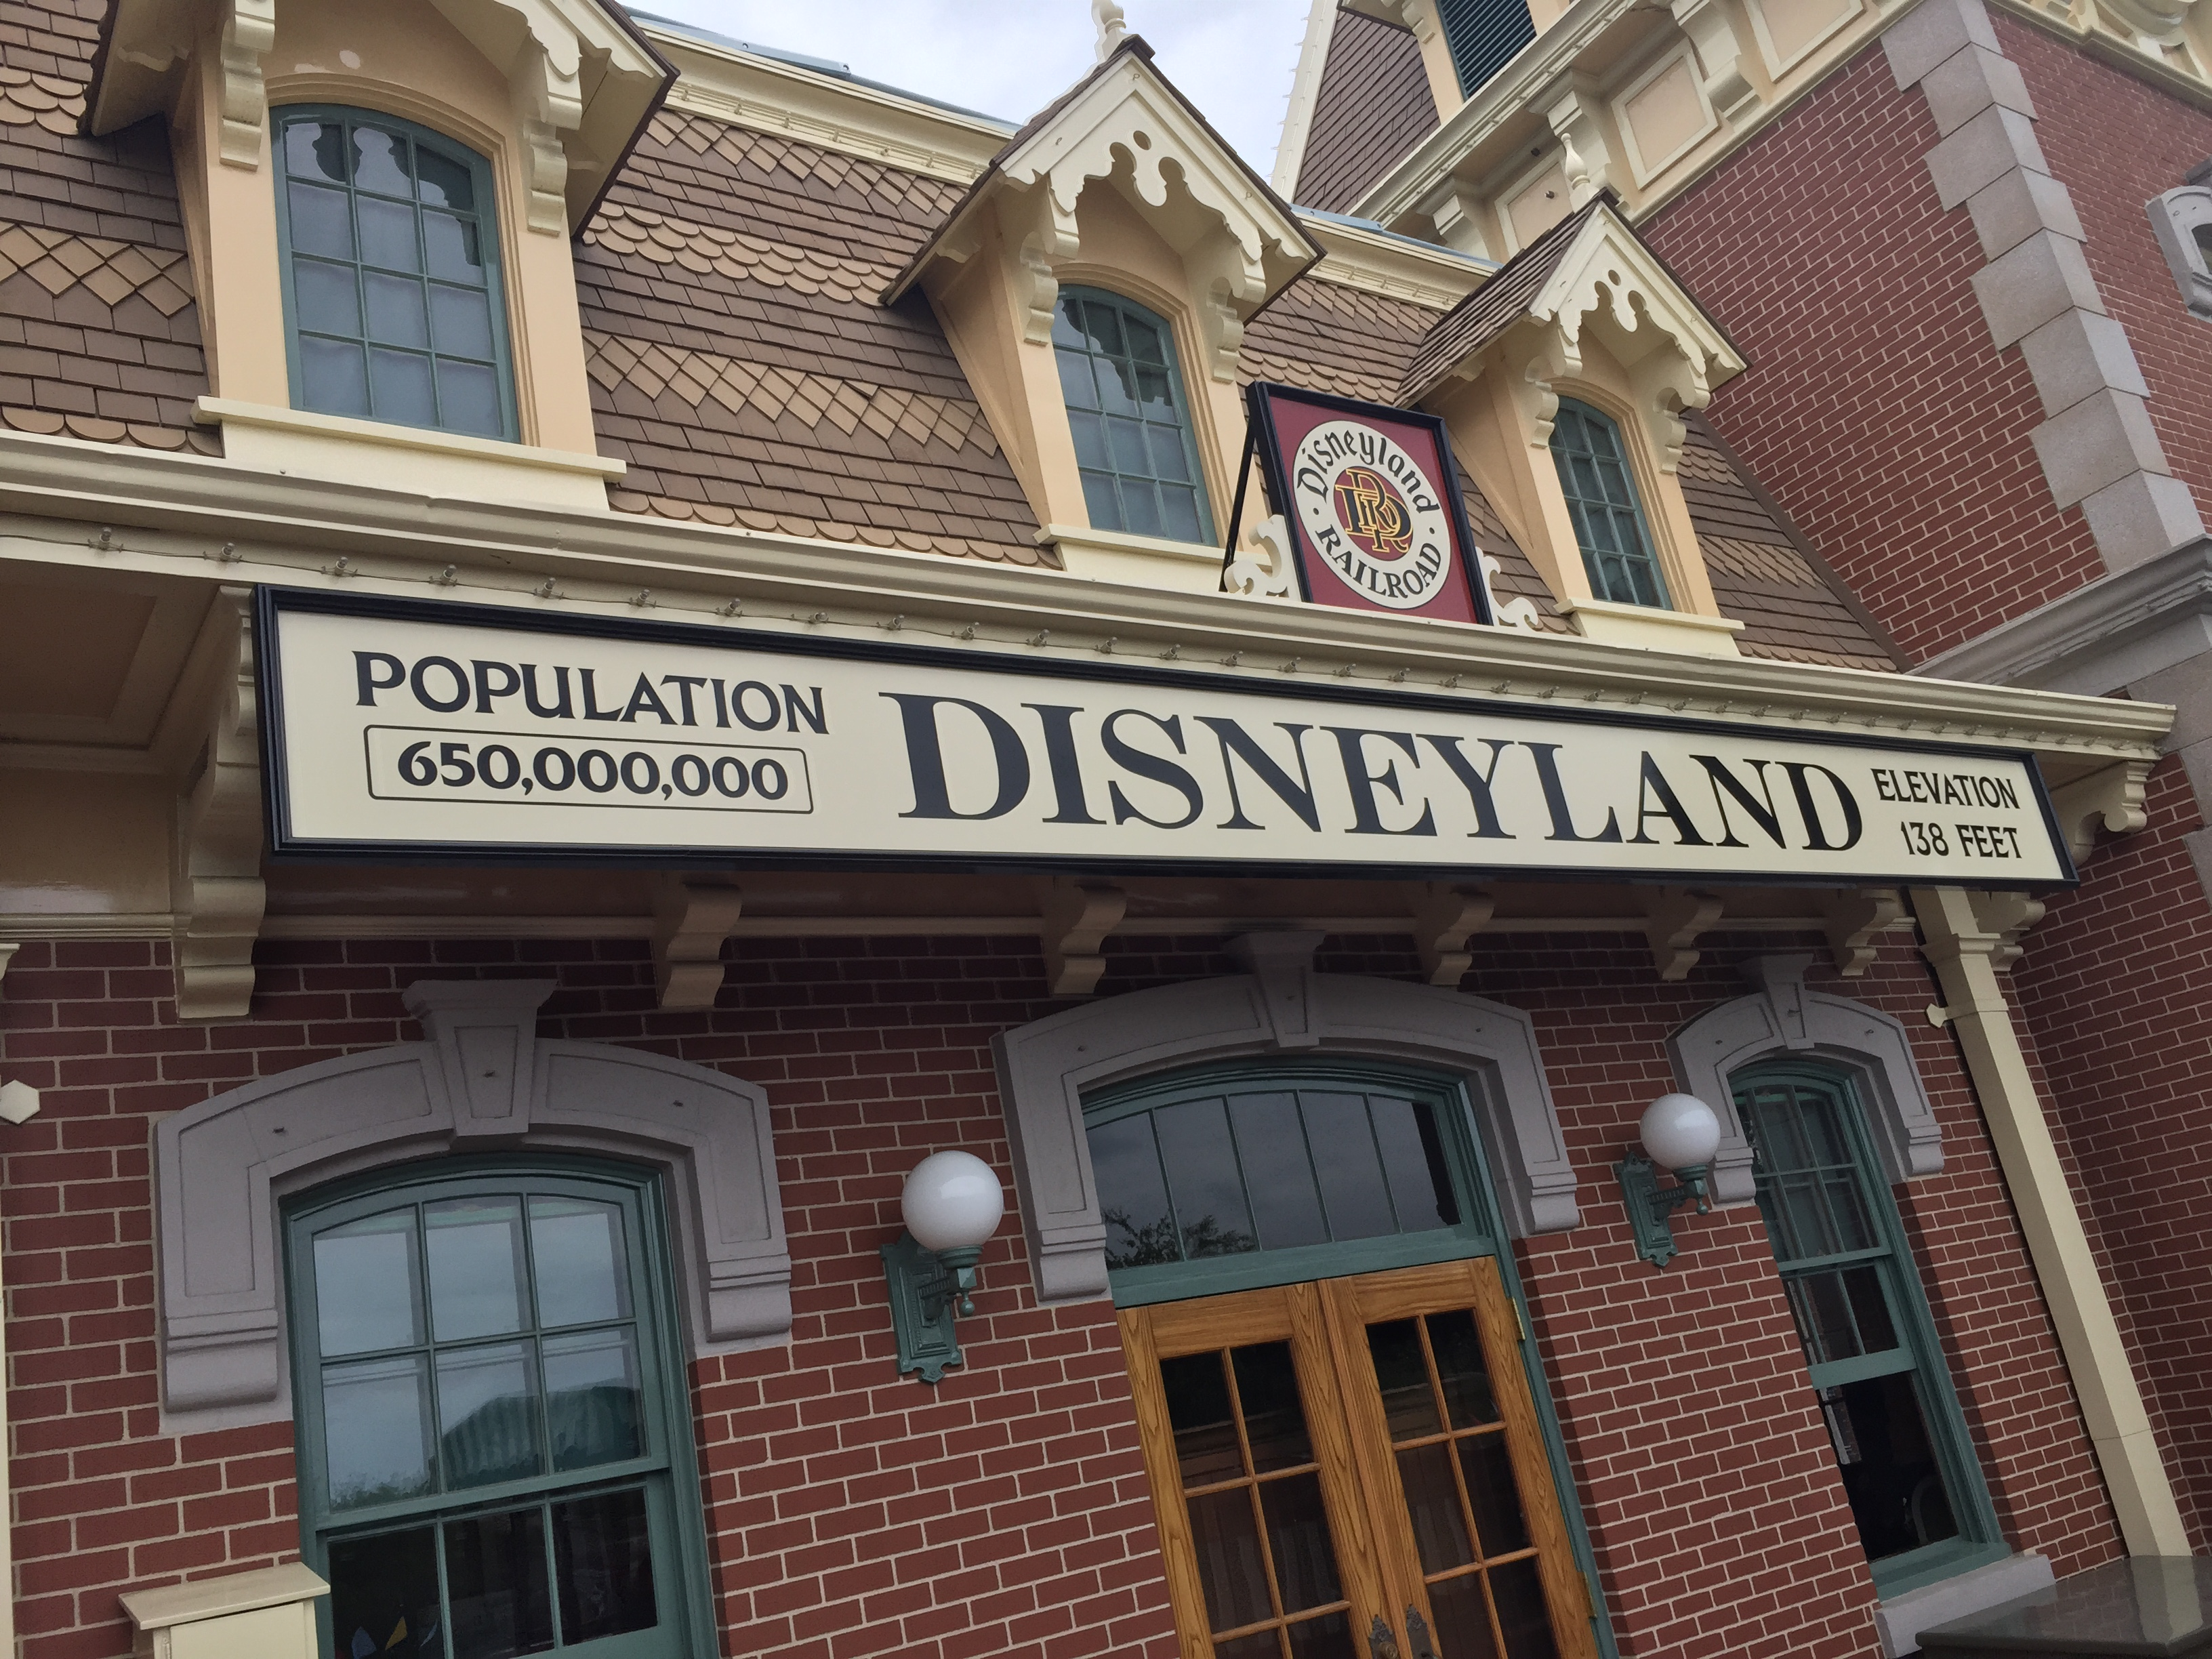 Disneyland From the Perspective of a Disney World Fan